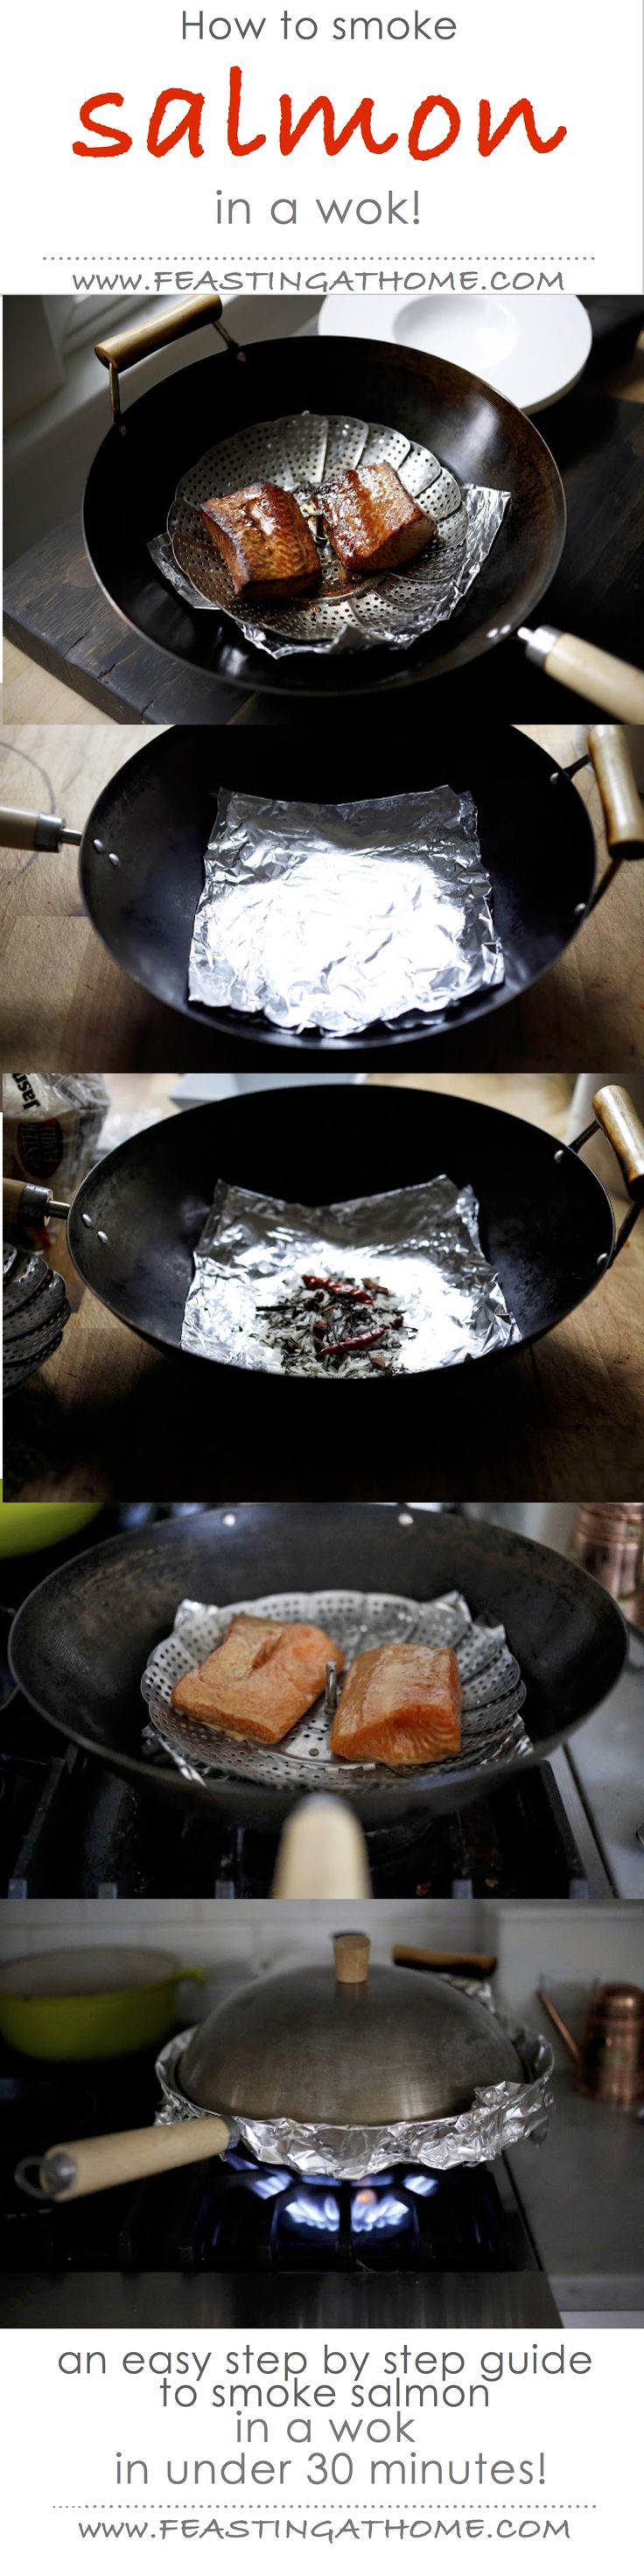 How To Smoke Salmon In A Wok Less Than 30 Minutes!